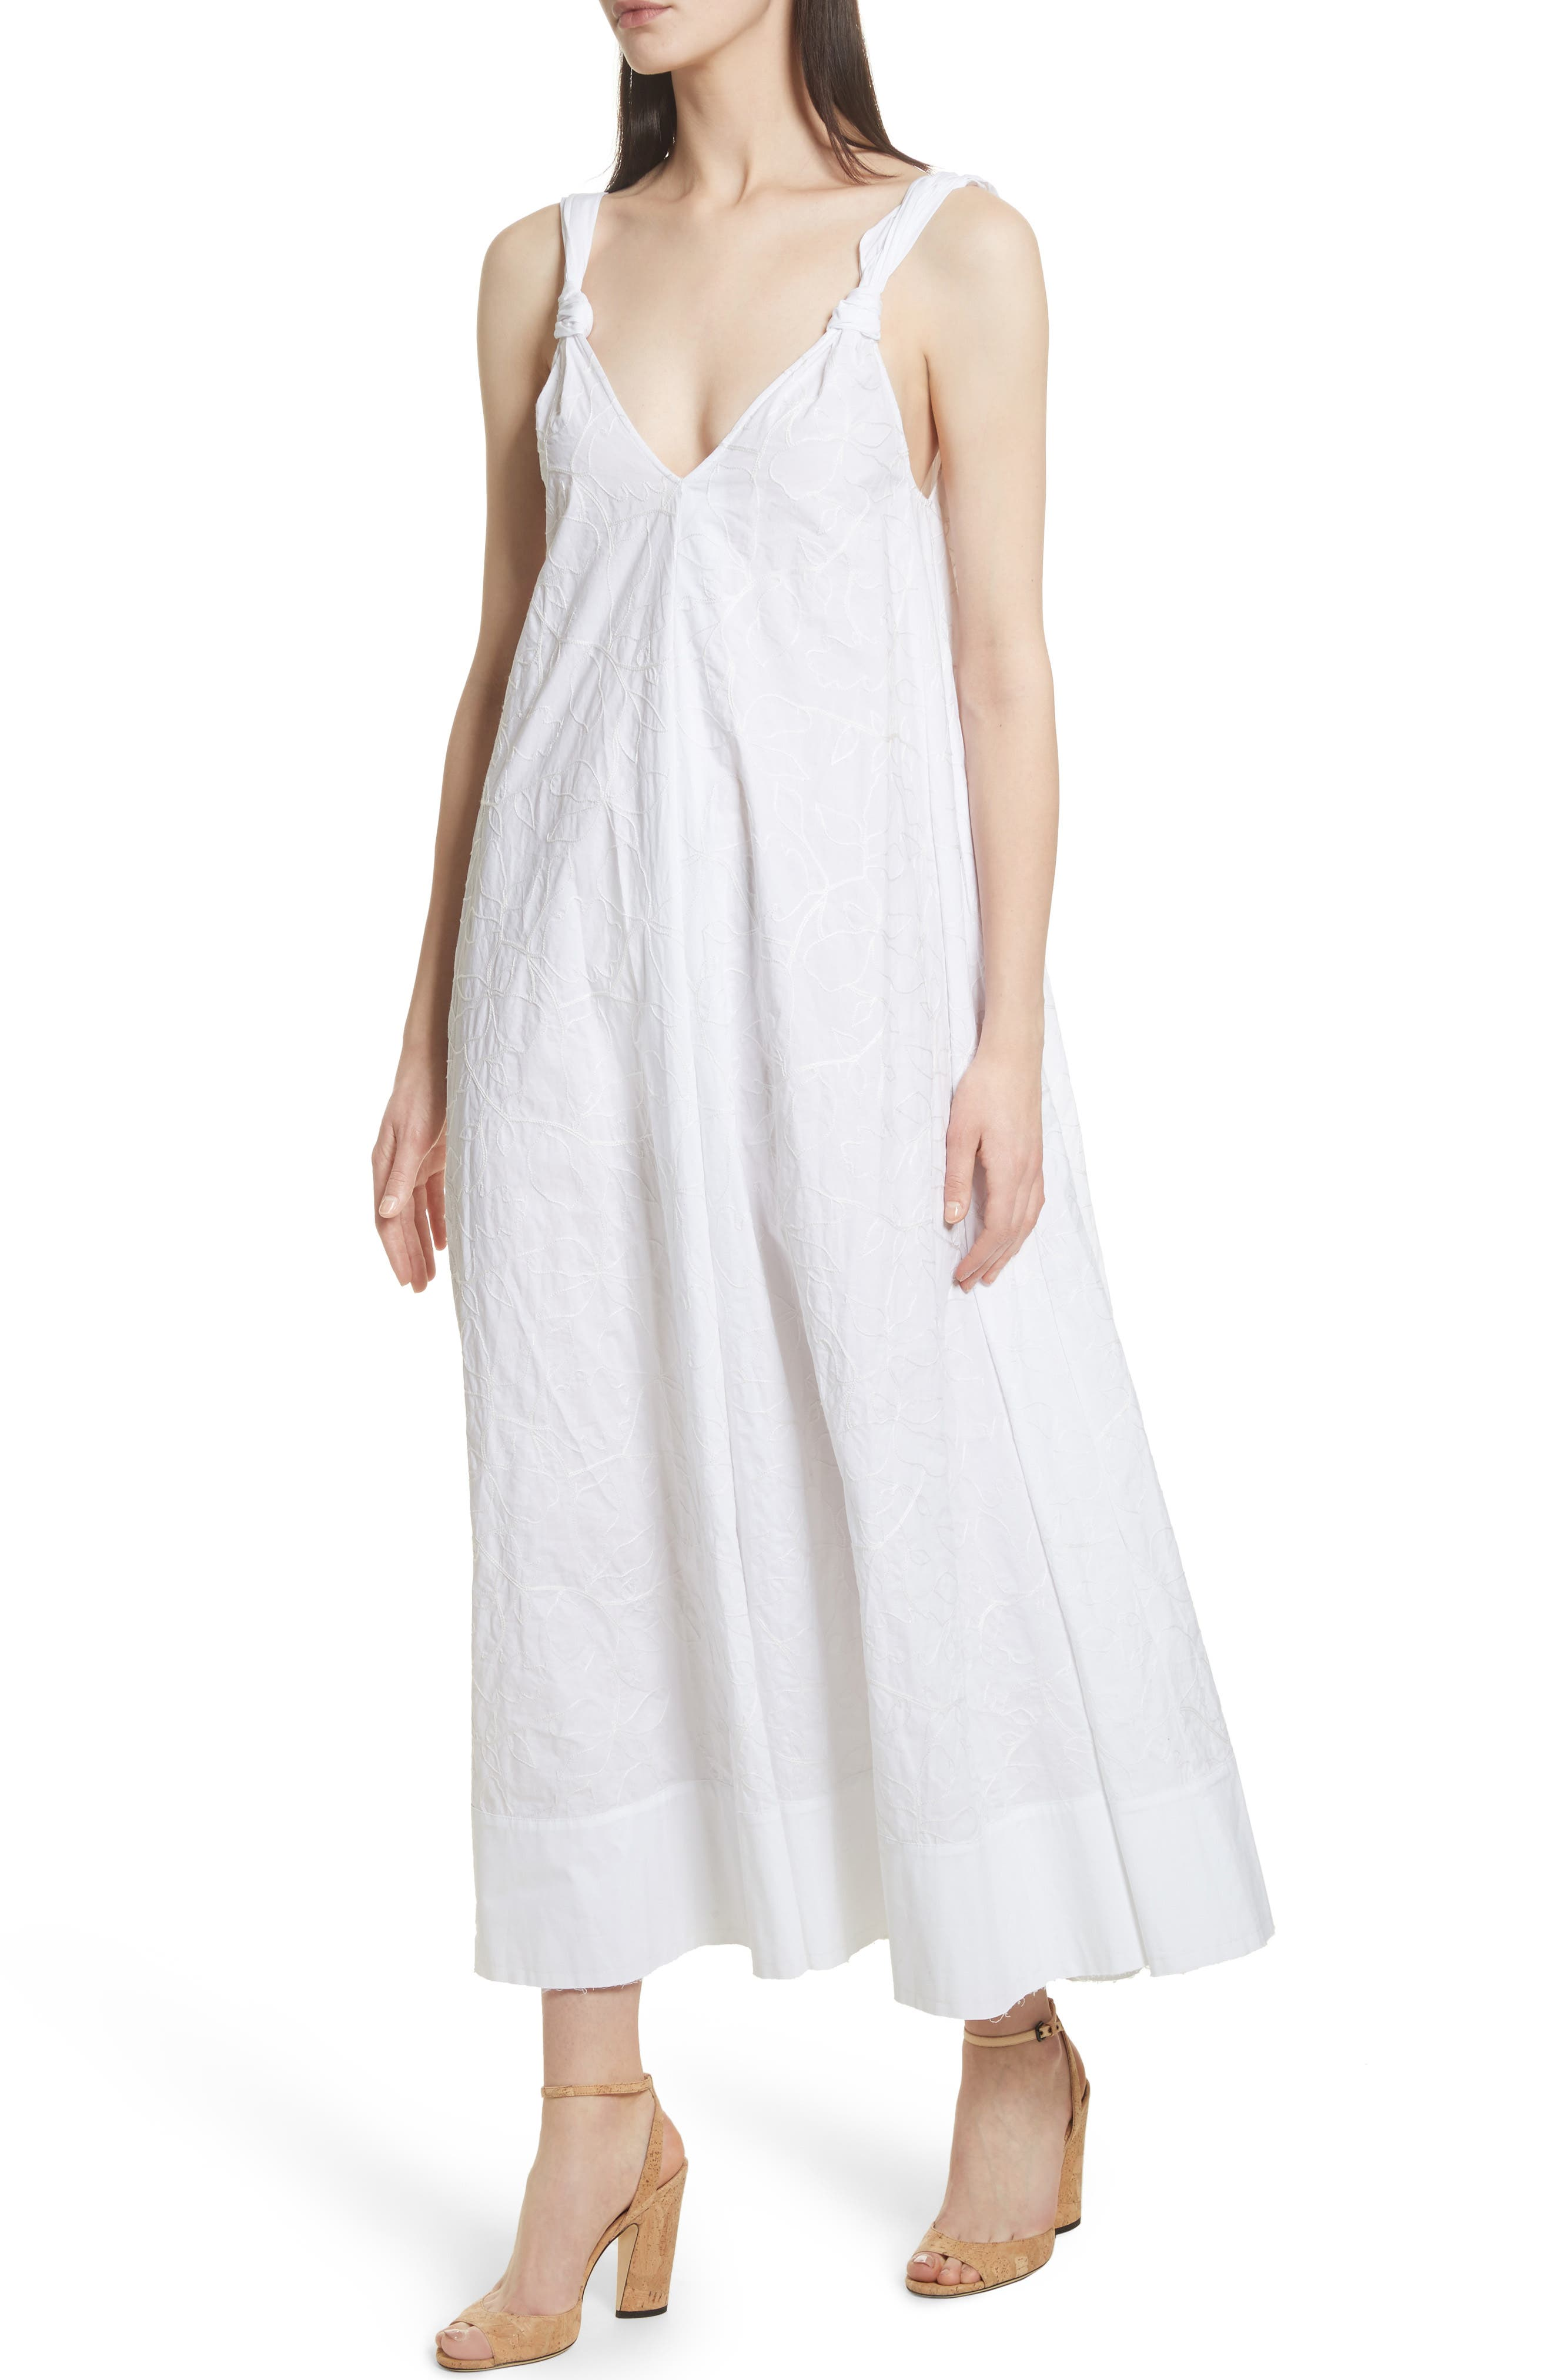 ELIZABETH AND JAMES,                             Denali Embroidered Maxi Dress,                             Alternate thumbnail 4, color,                             100